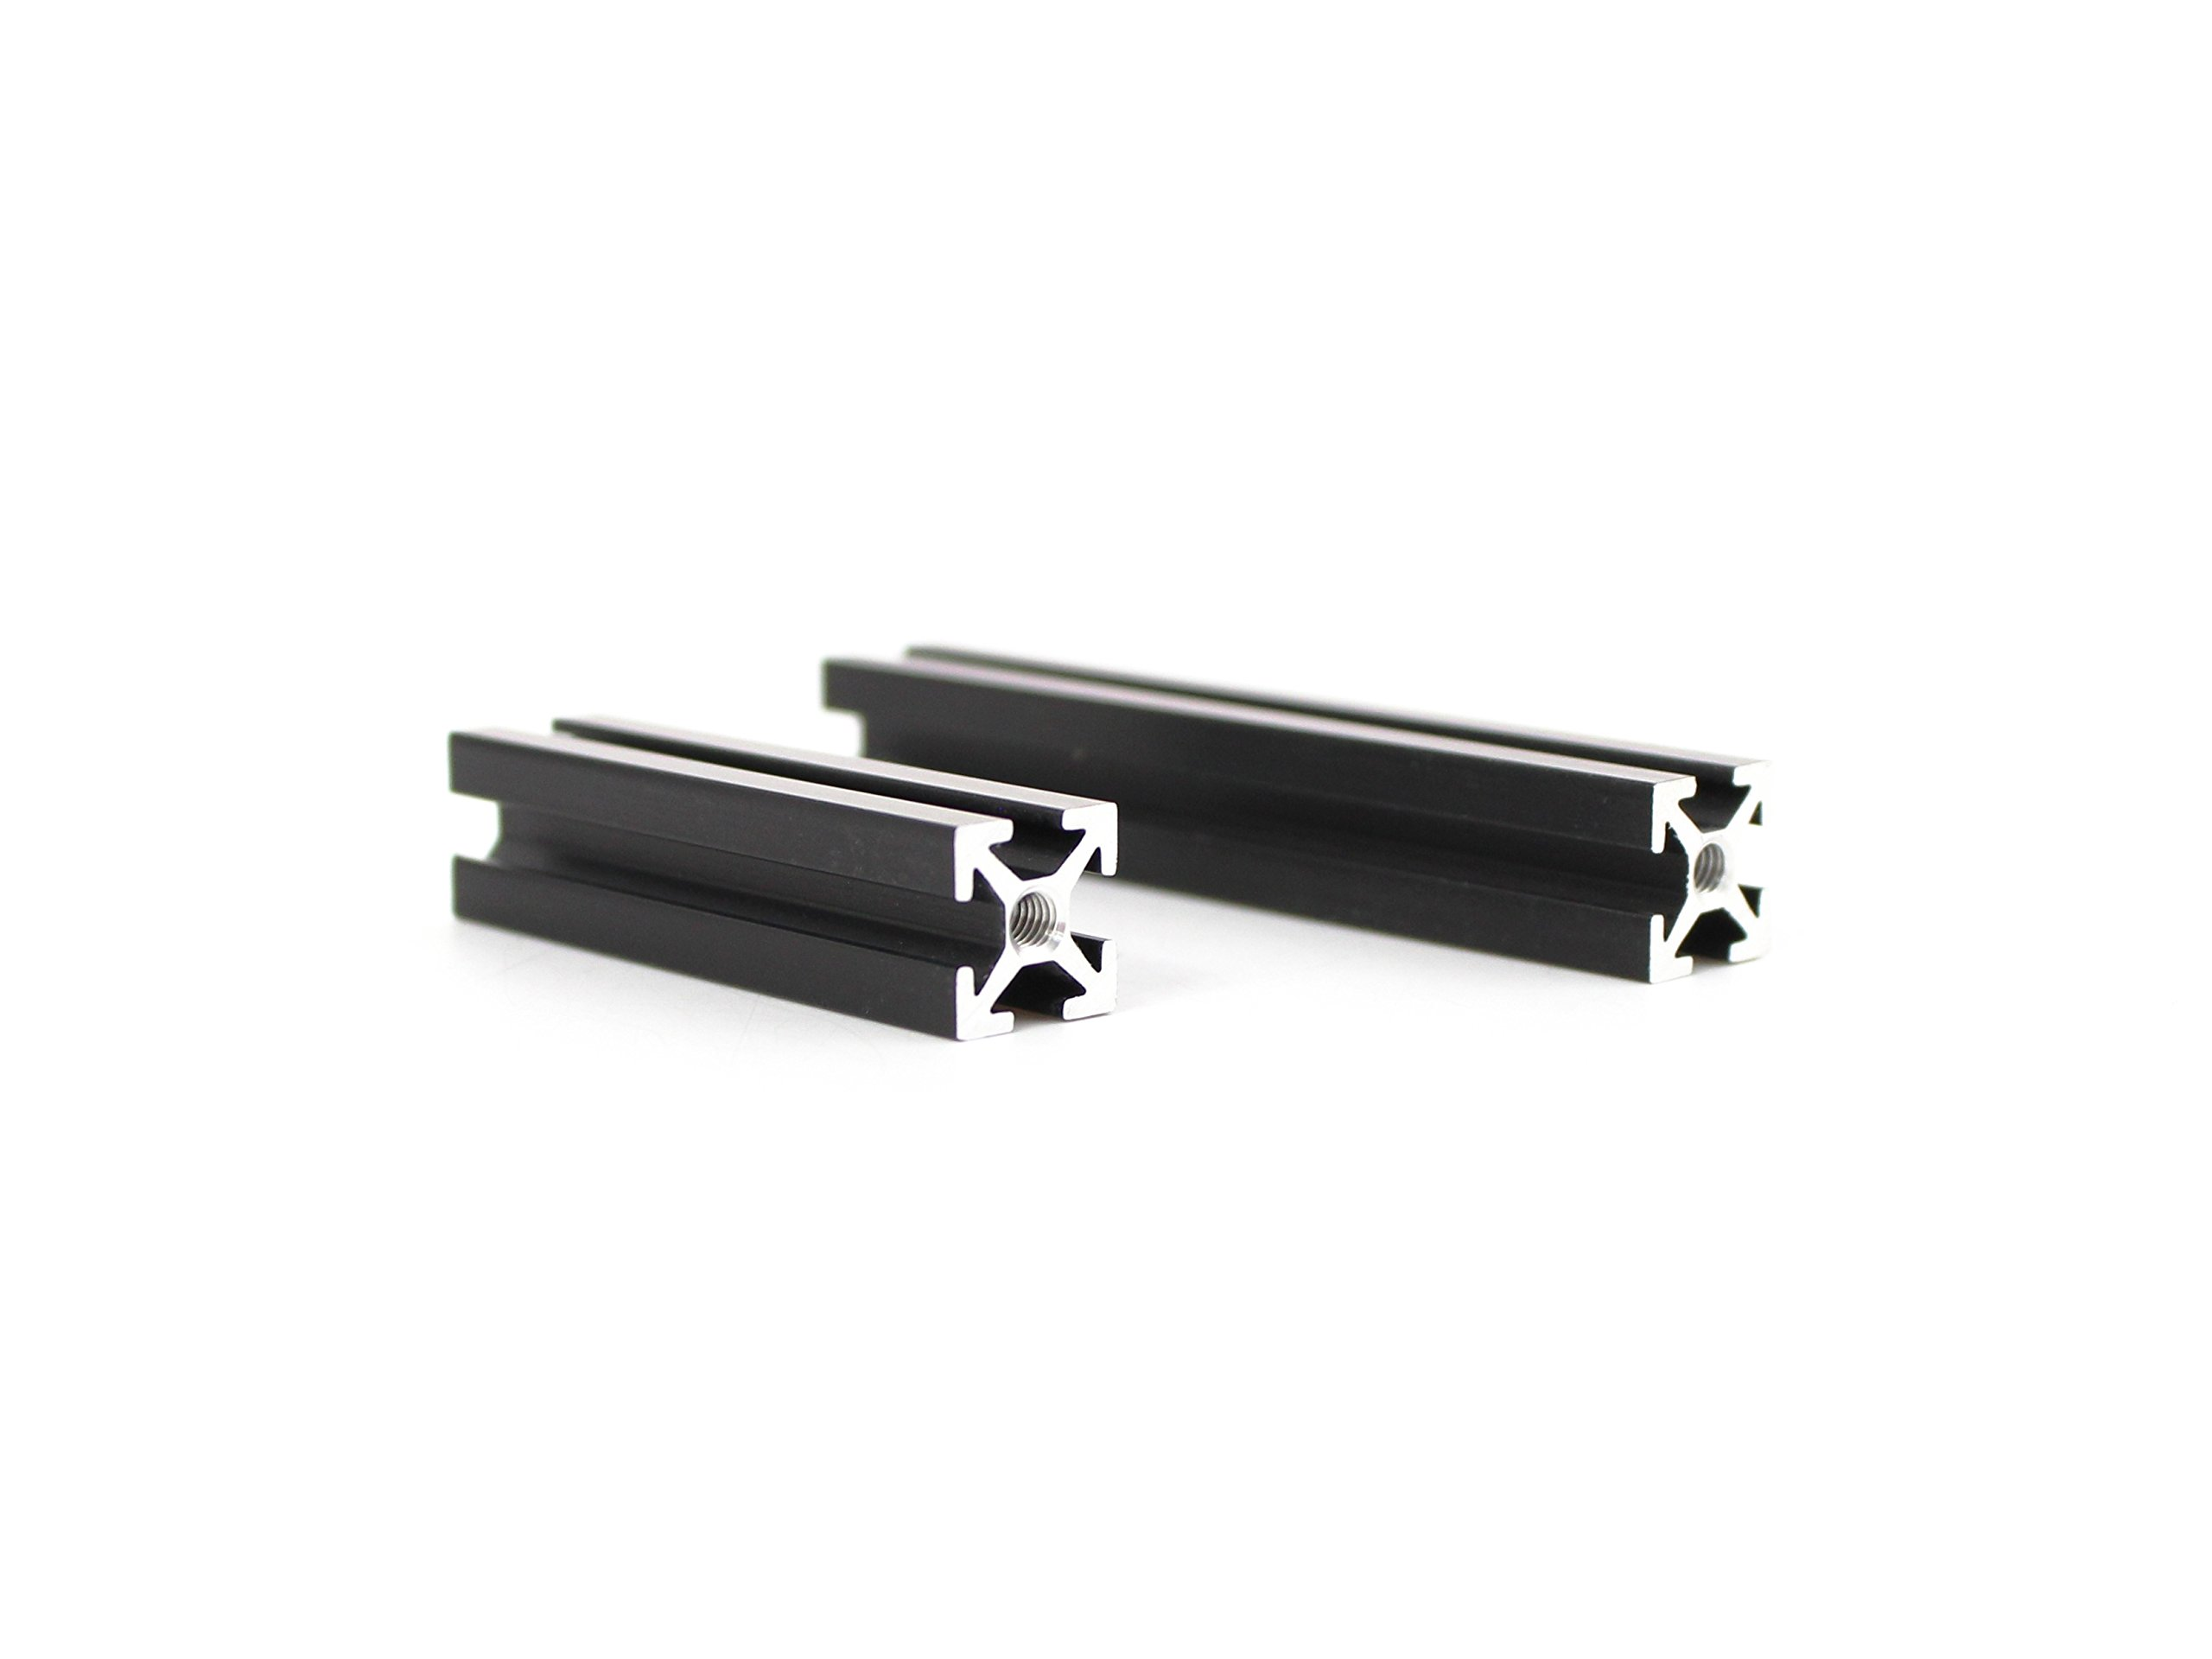 Makerbeam 40x10x10mm beam, black anodised (2 packs of 8 ) and 60x10x10mm beam, black anodised (2 pack of 8)